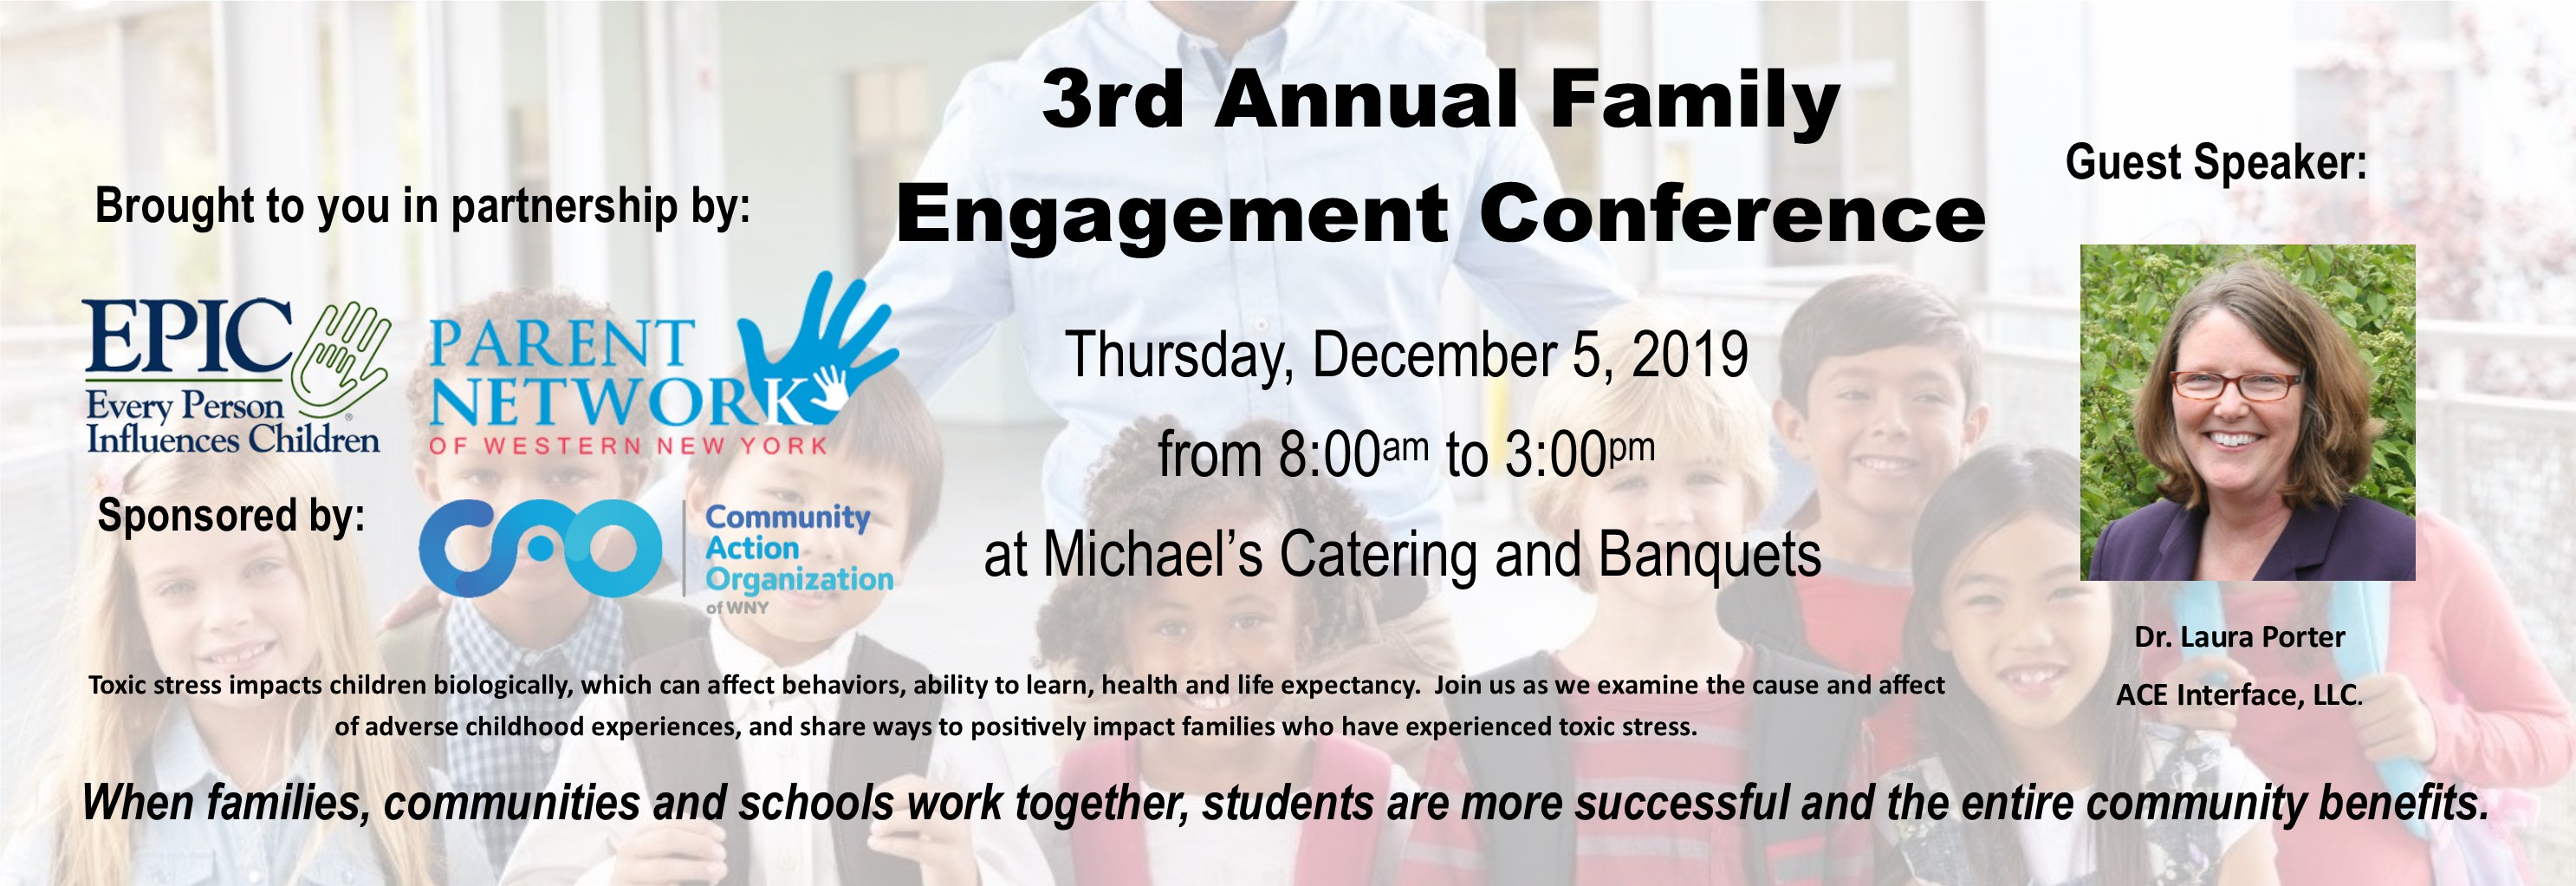 3rd Annual Family Engagement Conference Image